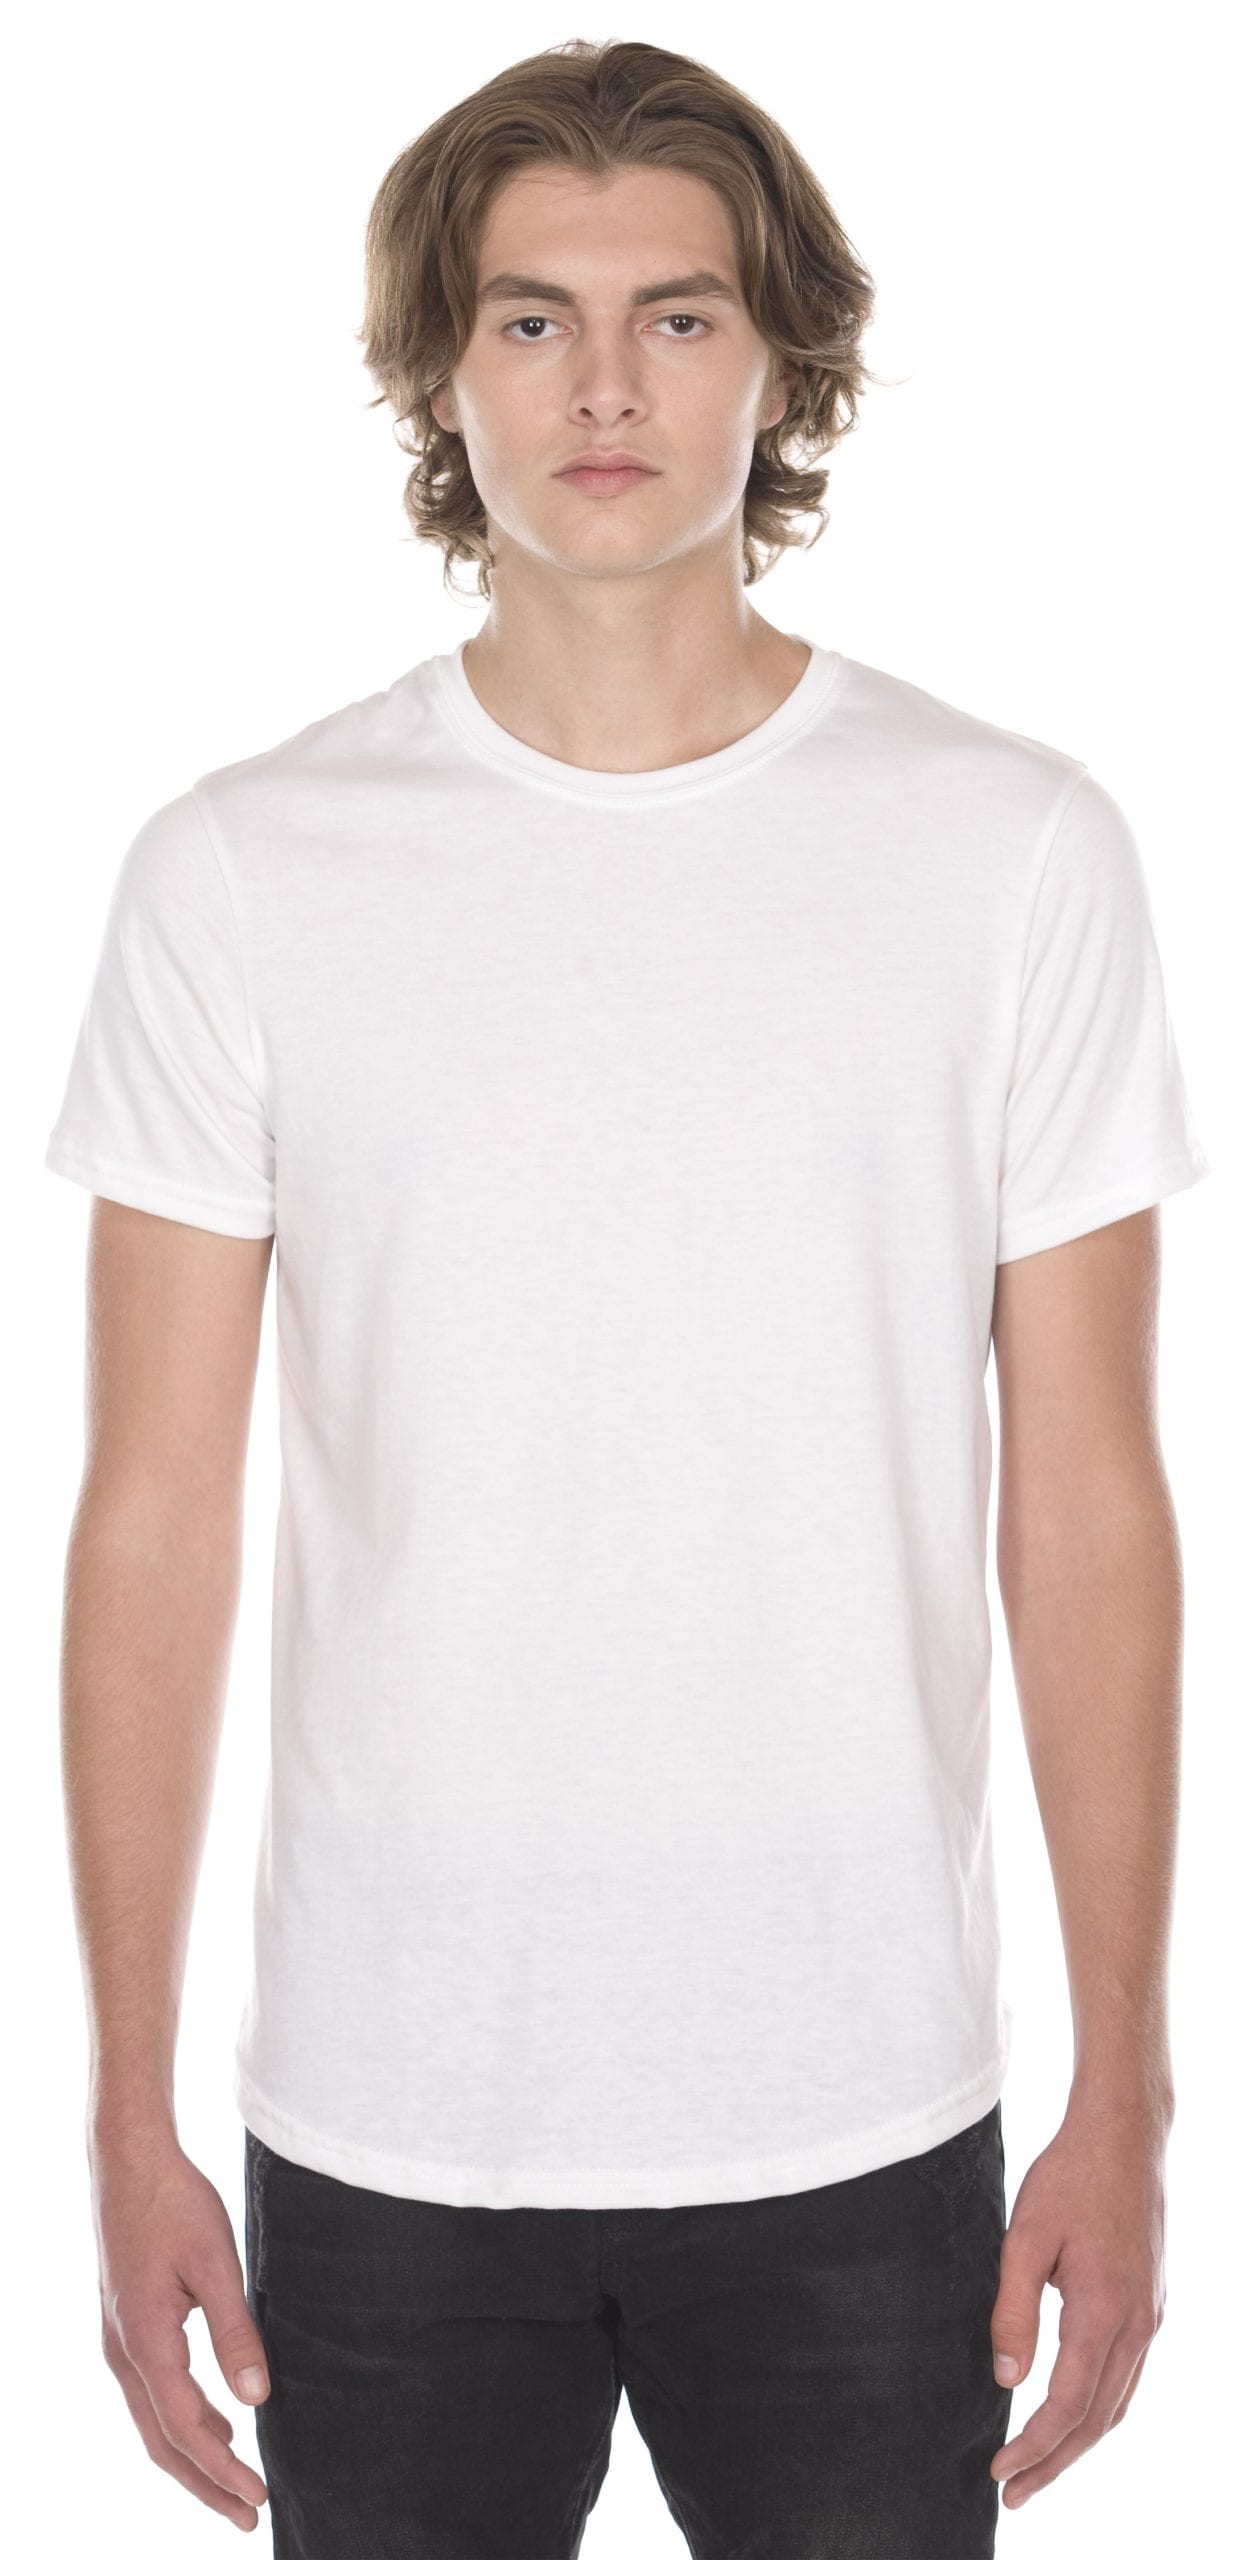 Jerico made in canada scoop bottom tee floodway for Custom t shirts canada no minimum